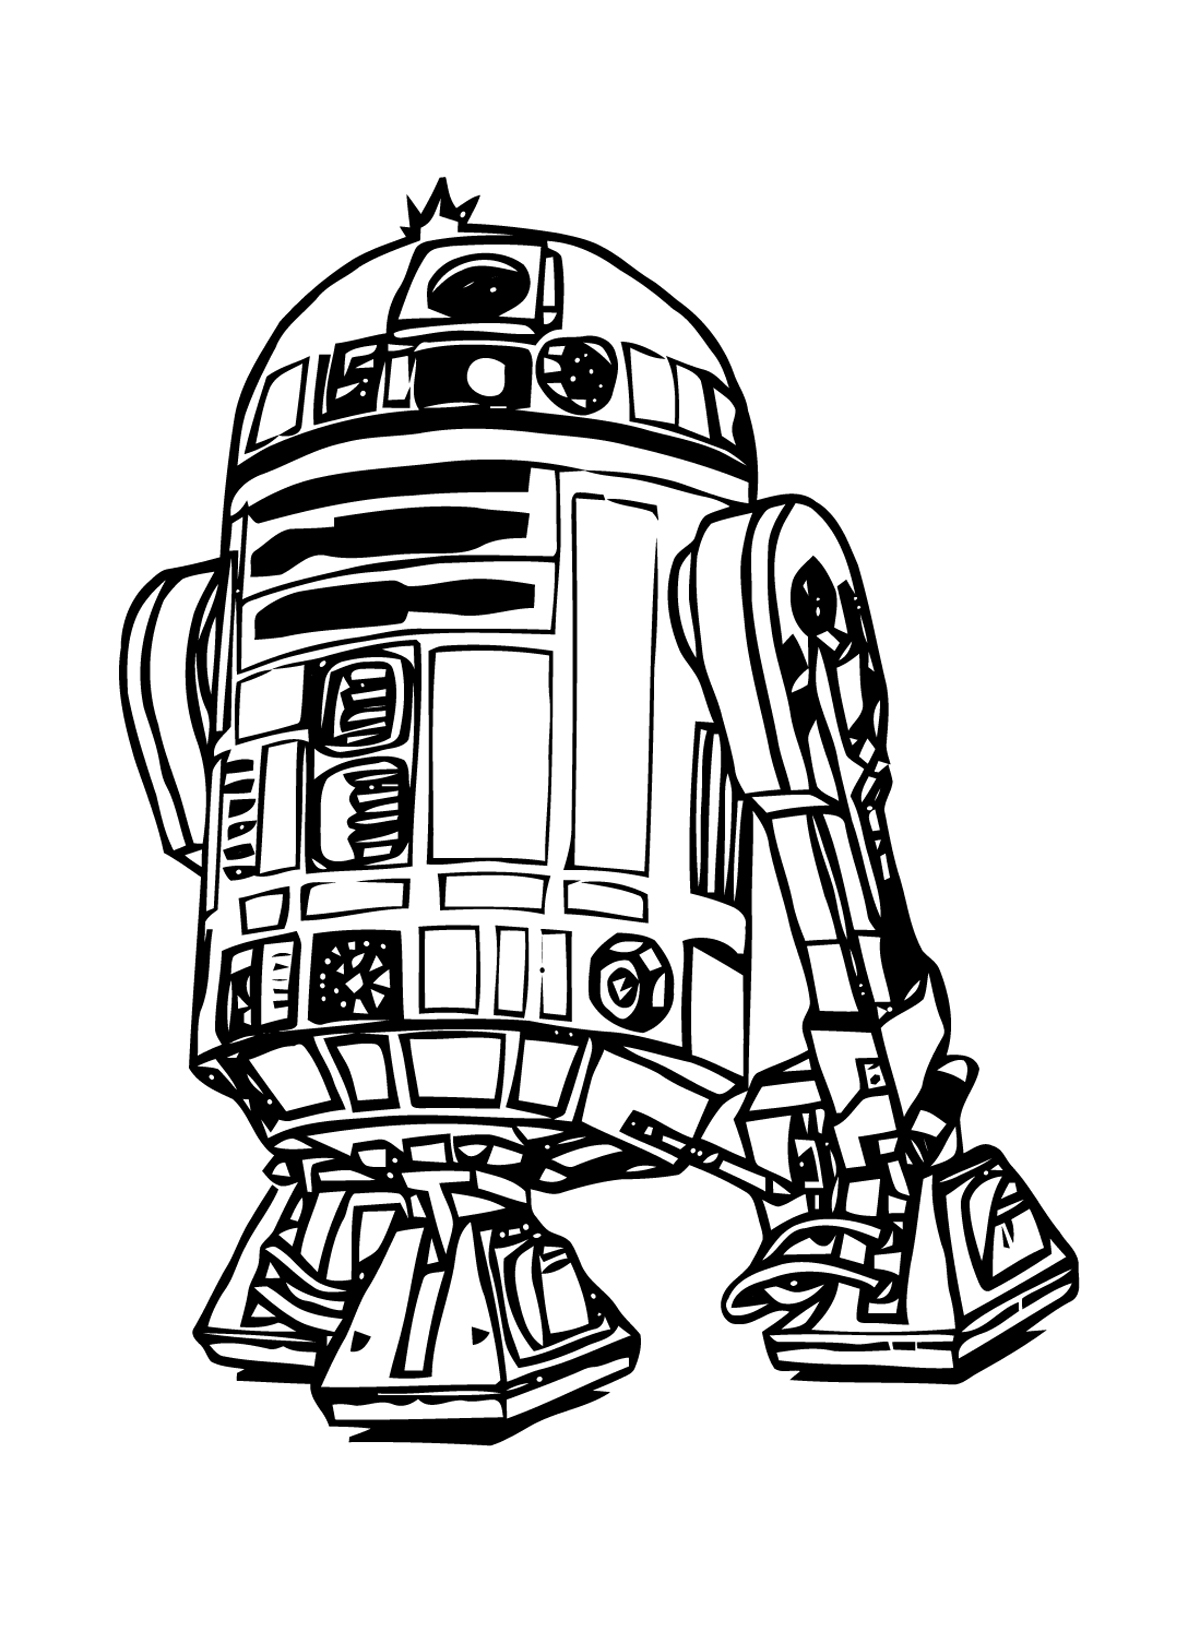 star wars coloring pages for kids star wars darth vader yoda coloring pages for kids storm star coloring wars kids pages for